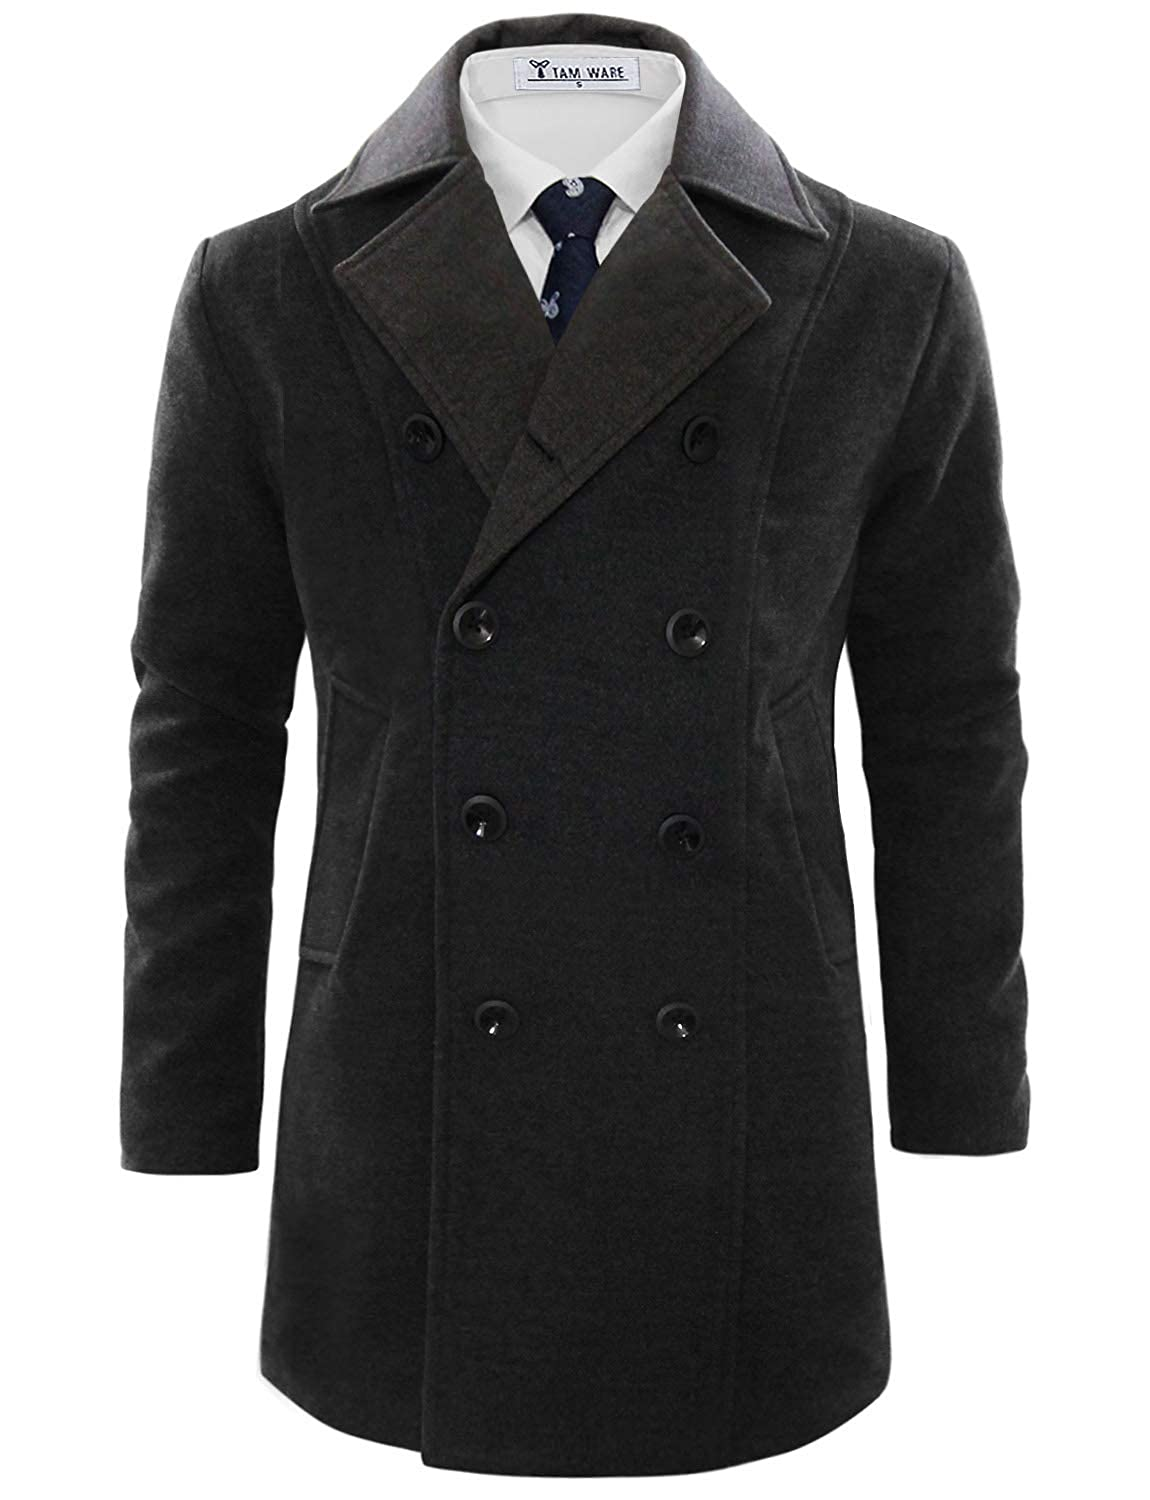 ebdeab6a1 TAM WARE Men's Stylish Wool Blend Pea Coat